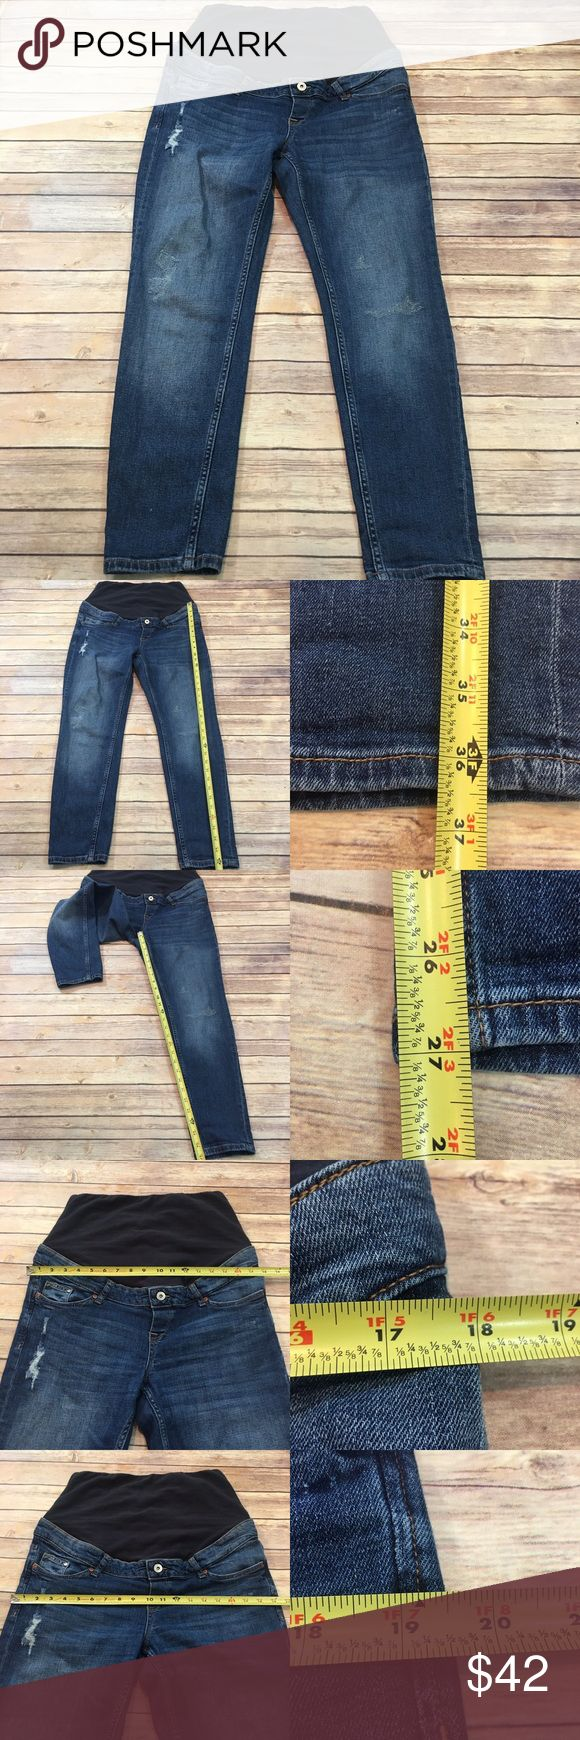 🎈Size 10 H&M Mama Boyfriend Fit Maternity Jeans Measurements are in photos. Normal wash wear, no flaws. C2/45  I do not comment to my buyers after purchases, due to their privacy. If you would like any reassurance after your purchase that I did receive your order, please feel free to comment on the listing and I will promptly respond.   I ship everyday and I always package safely. Thank you for shopping my closet! H&M Jeans Boyfriend